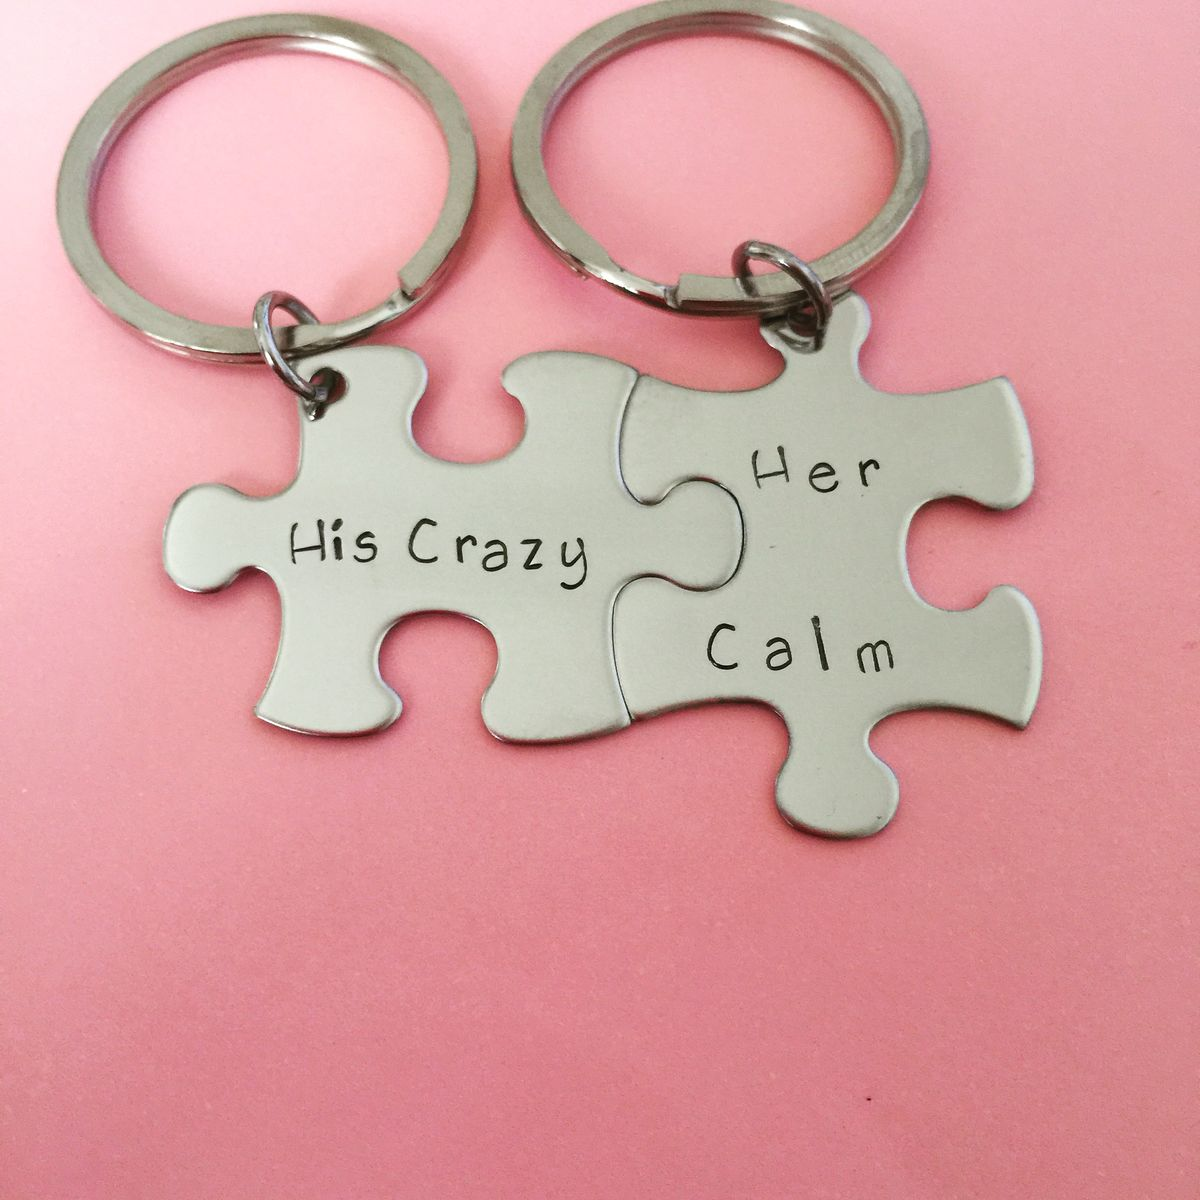 His Crazy Her Calm Keychains - product images  of